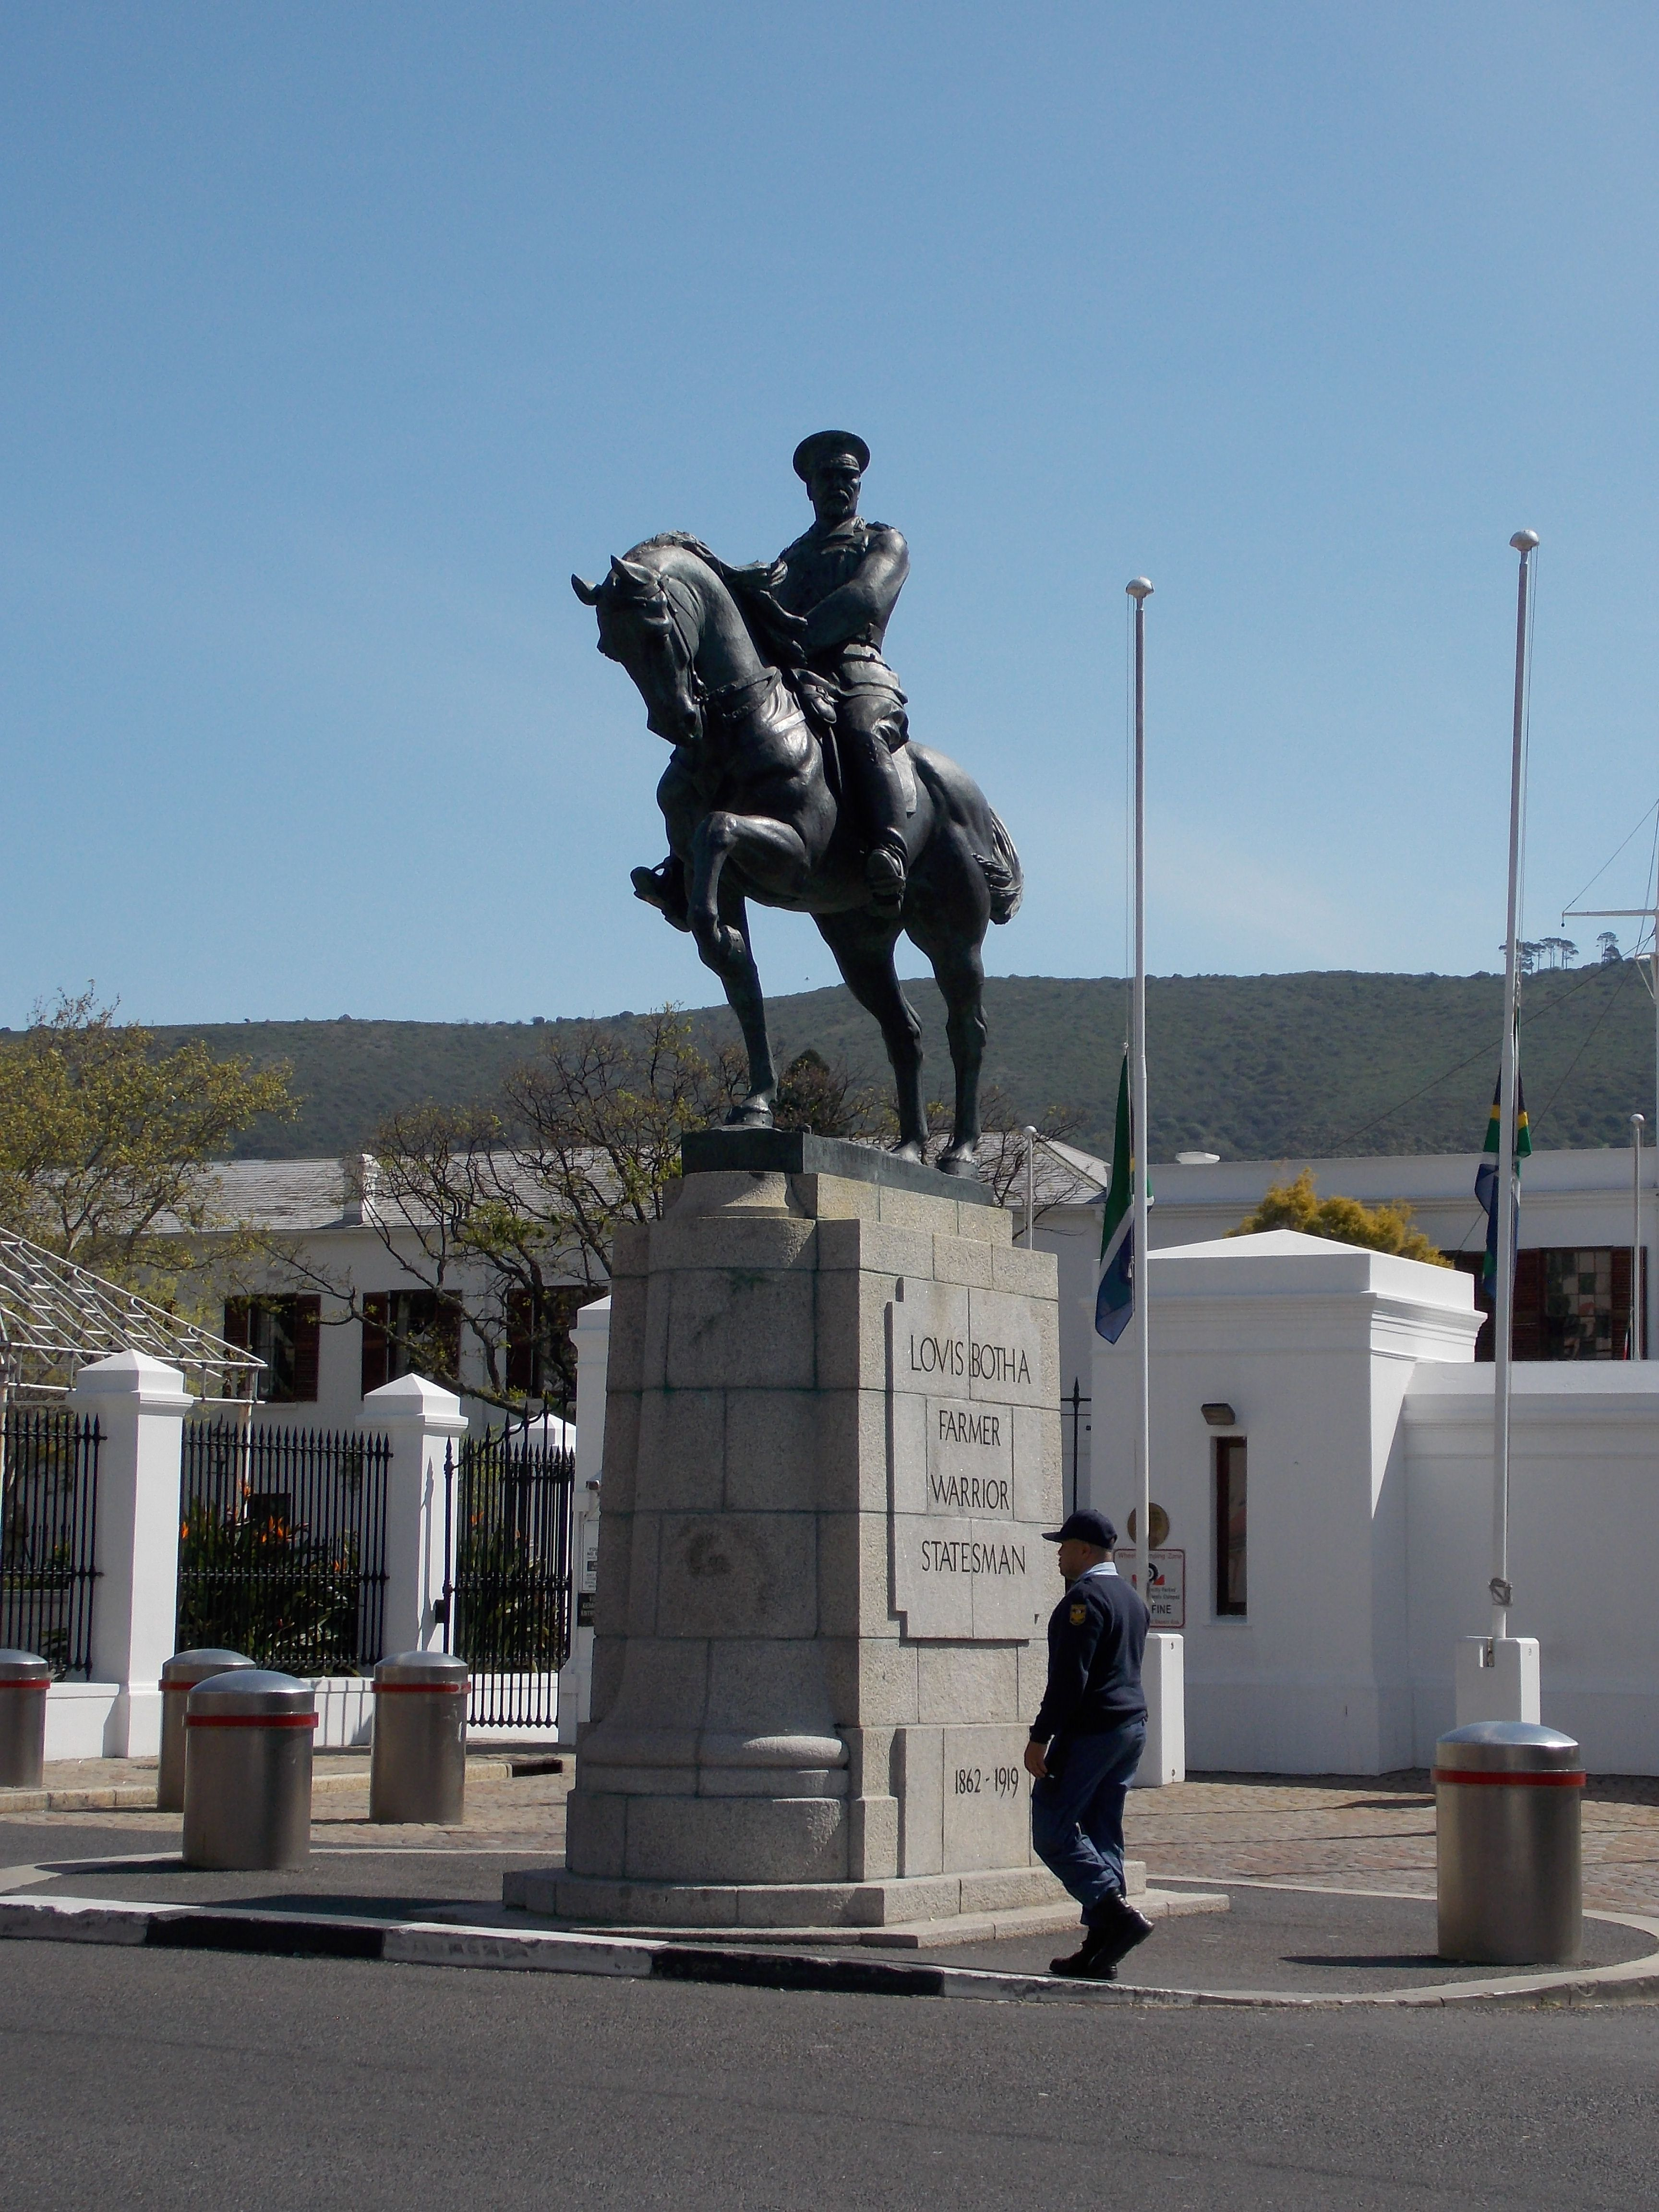 A member of the South African Police Service passes under the Botha statue at Parliament - now closely guarded, making it difficult for vandals